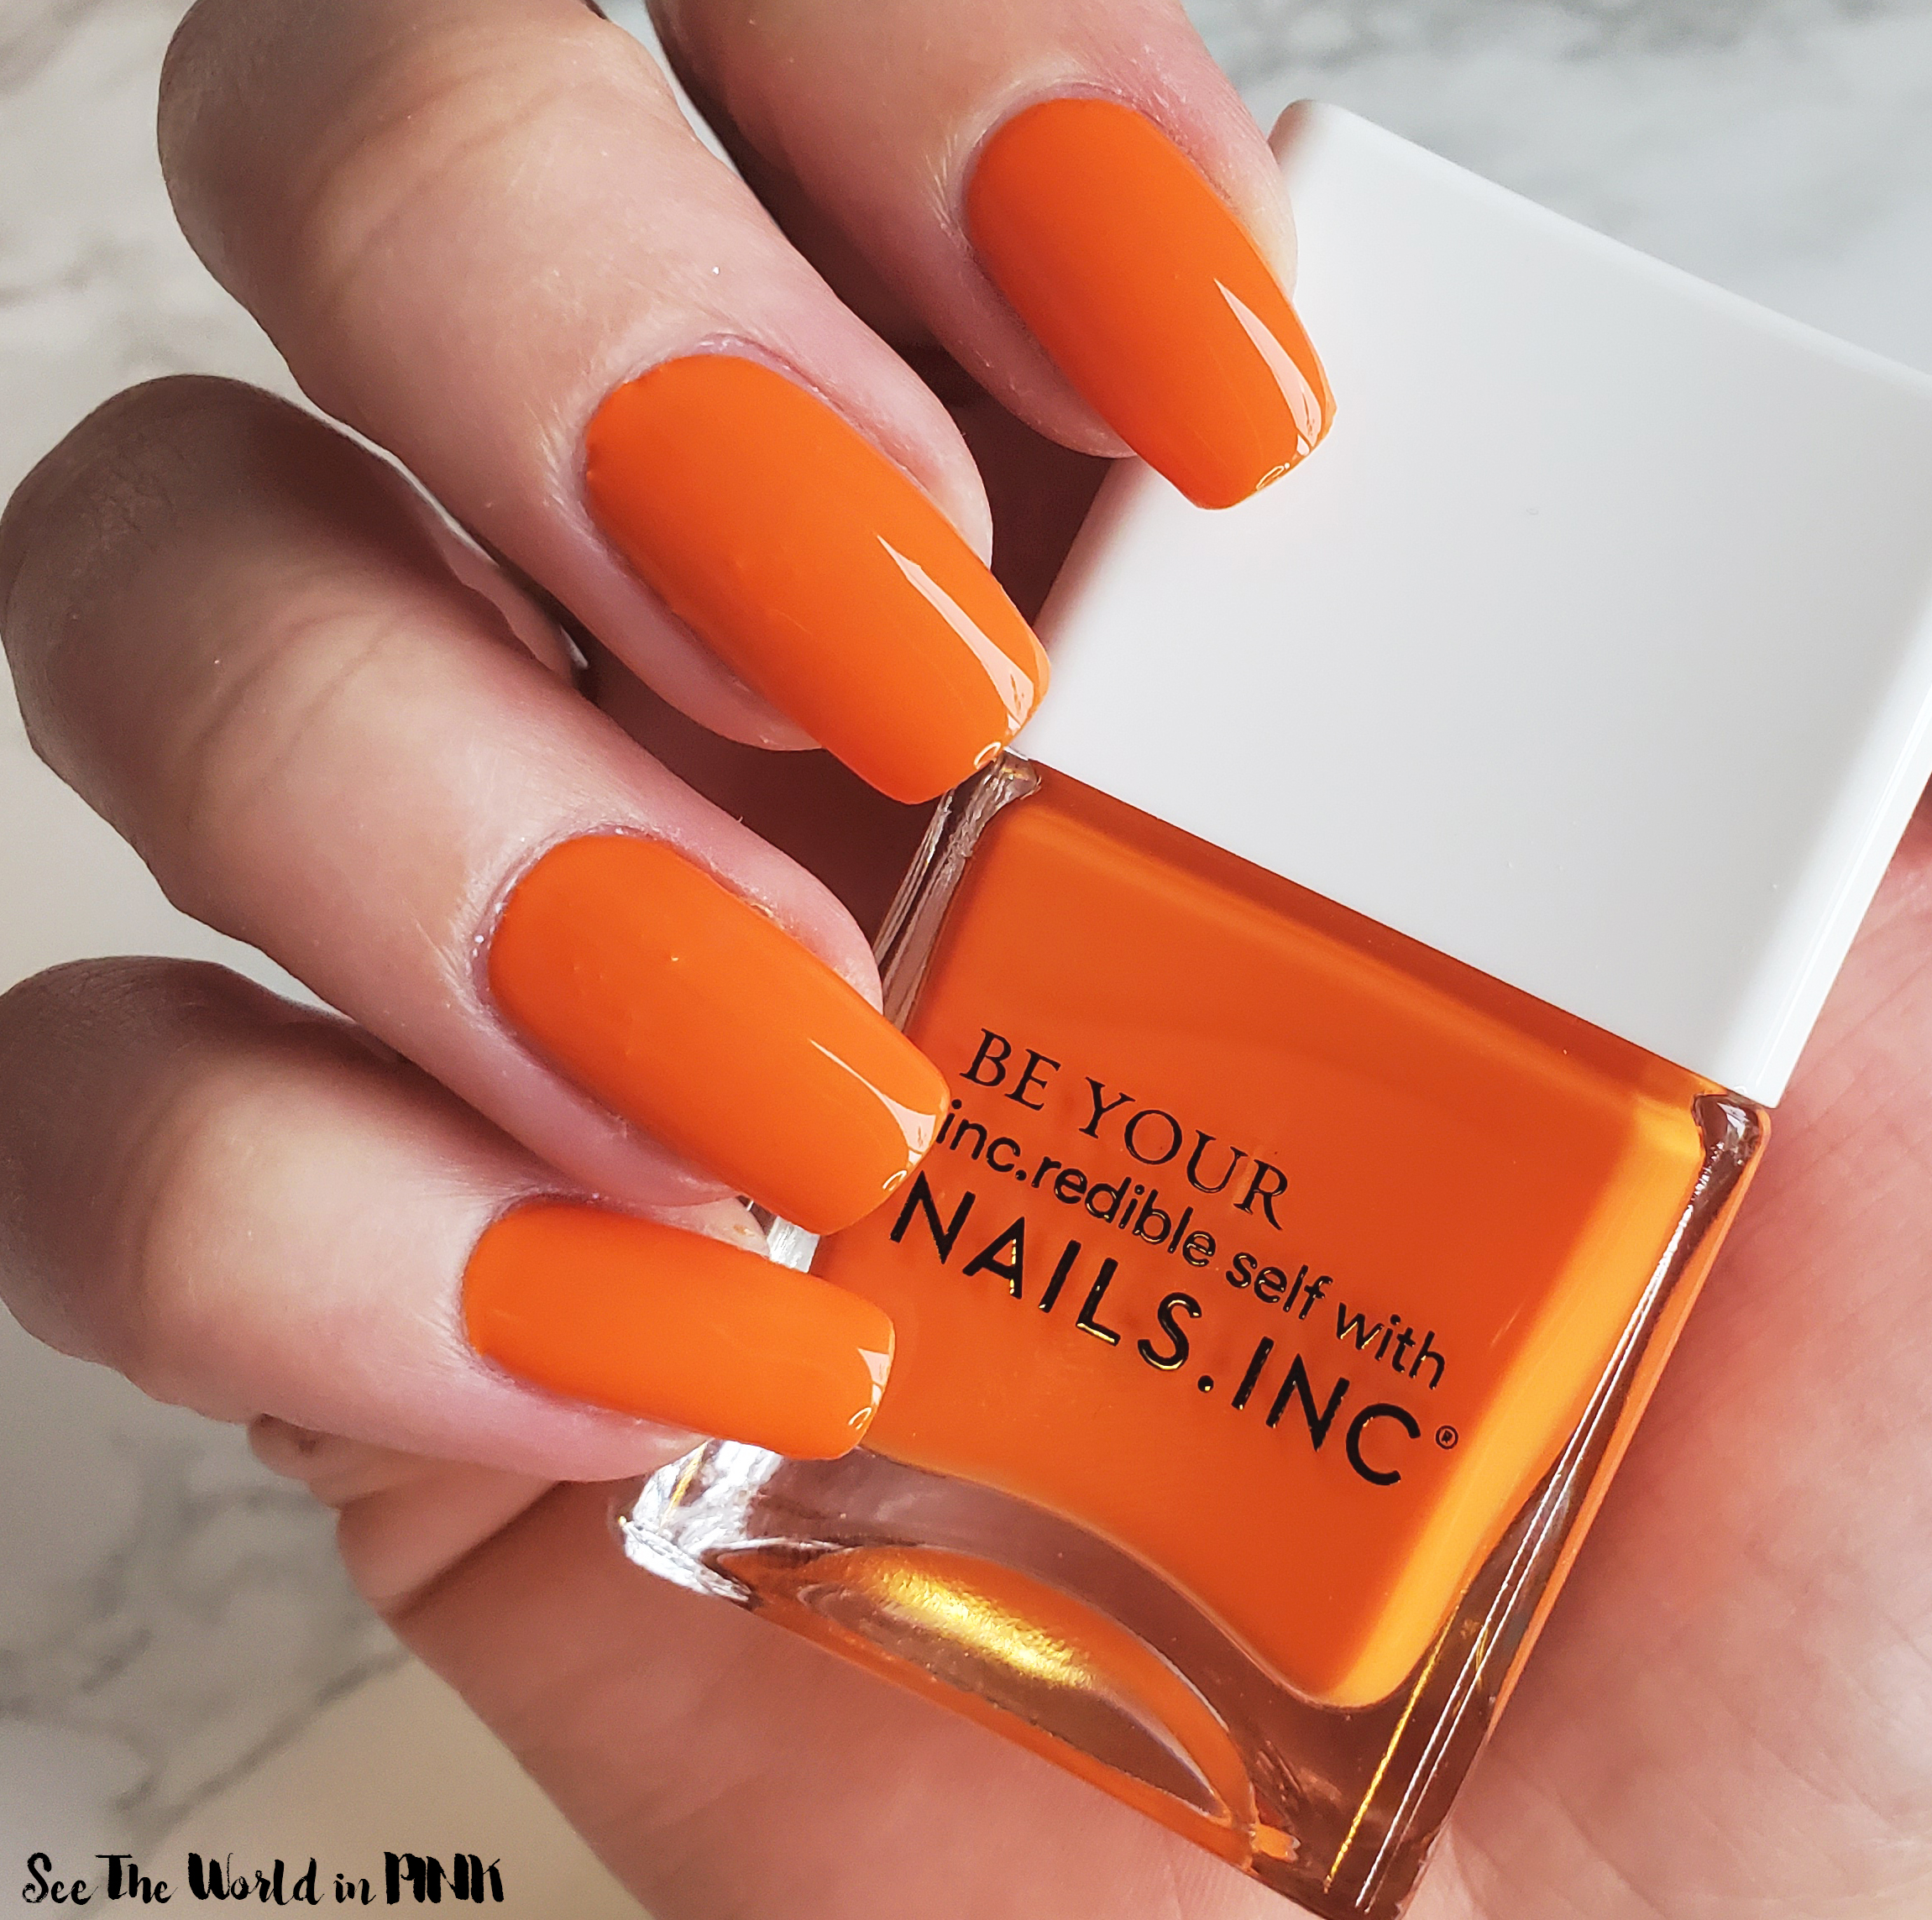 Nails Inc Not From Concentrate